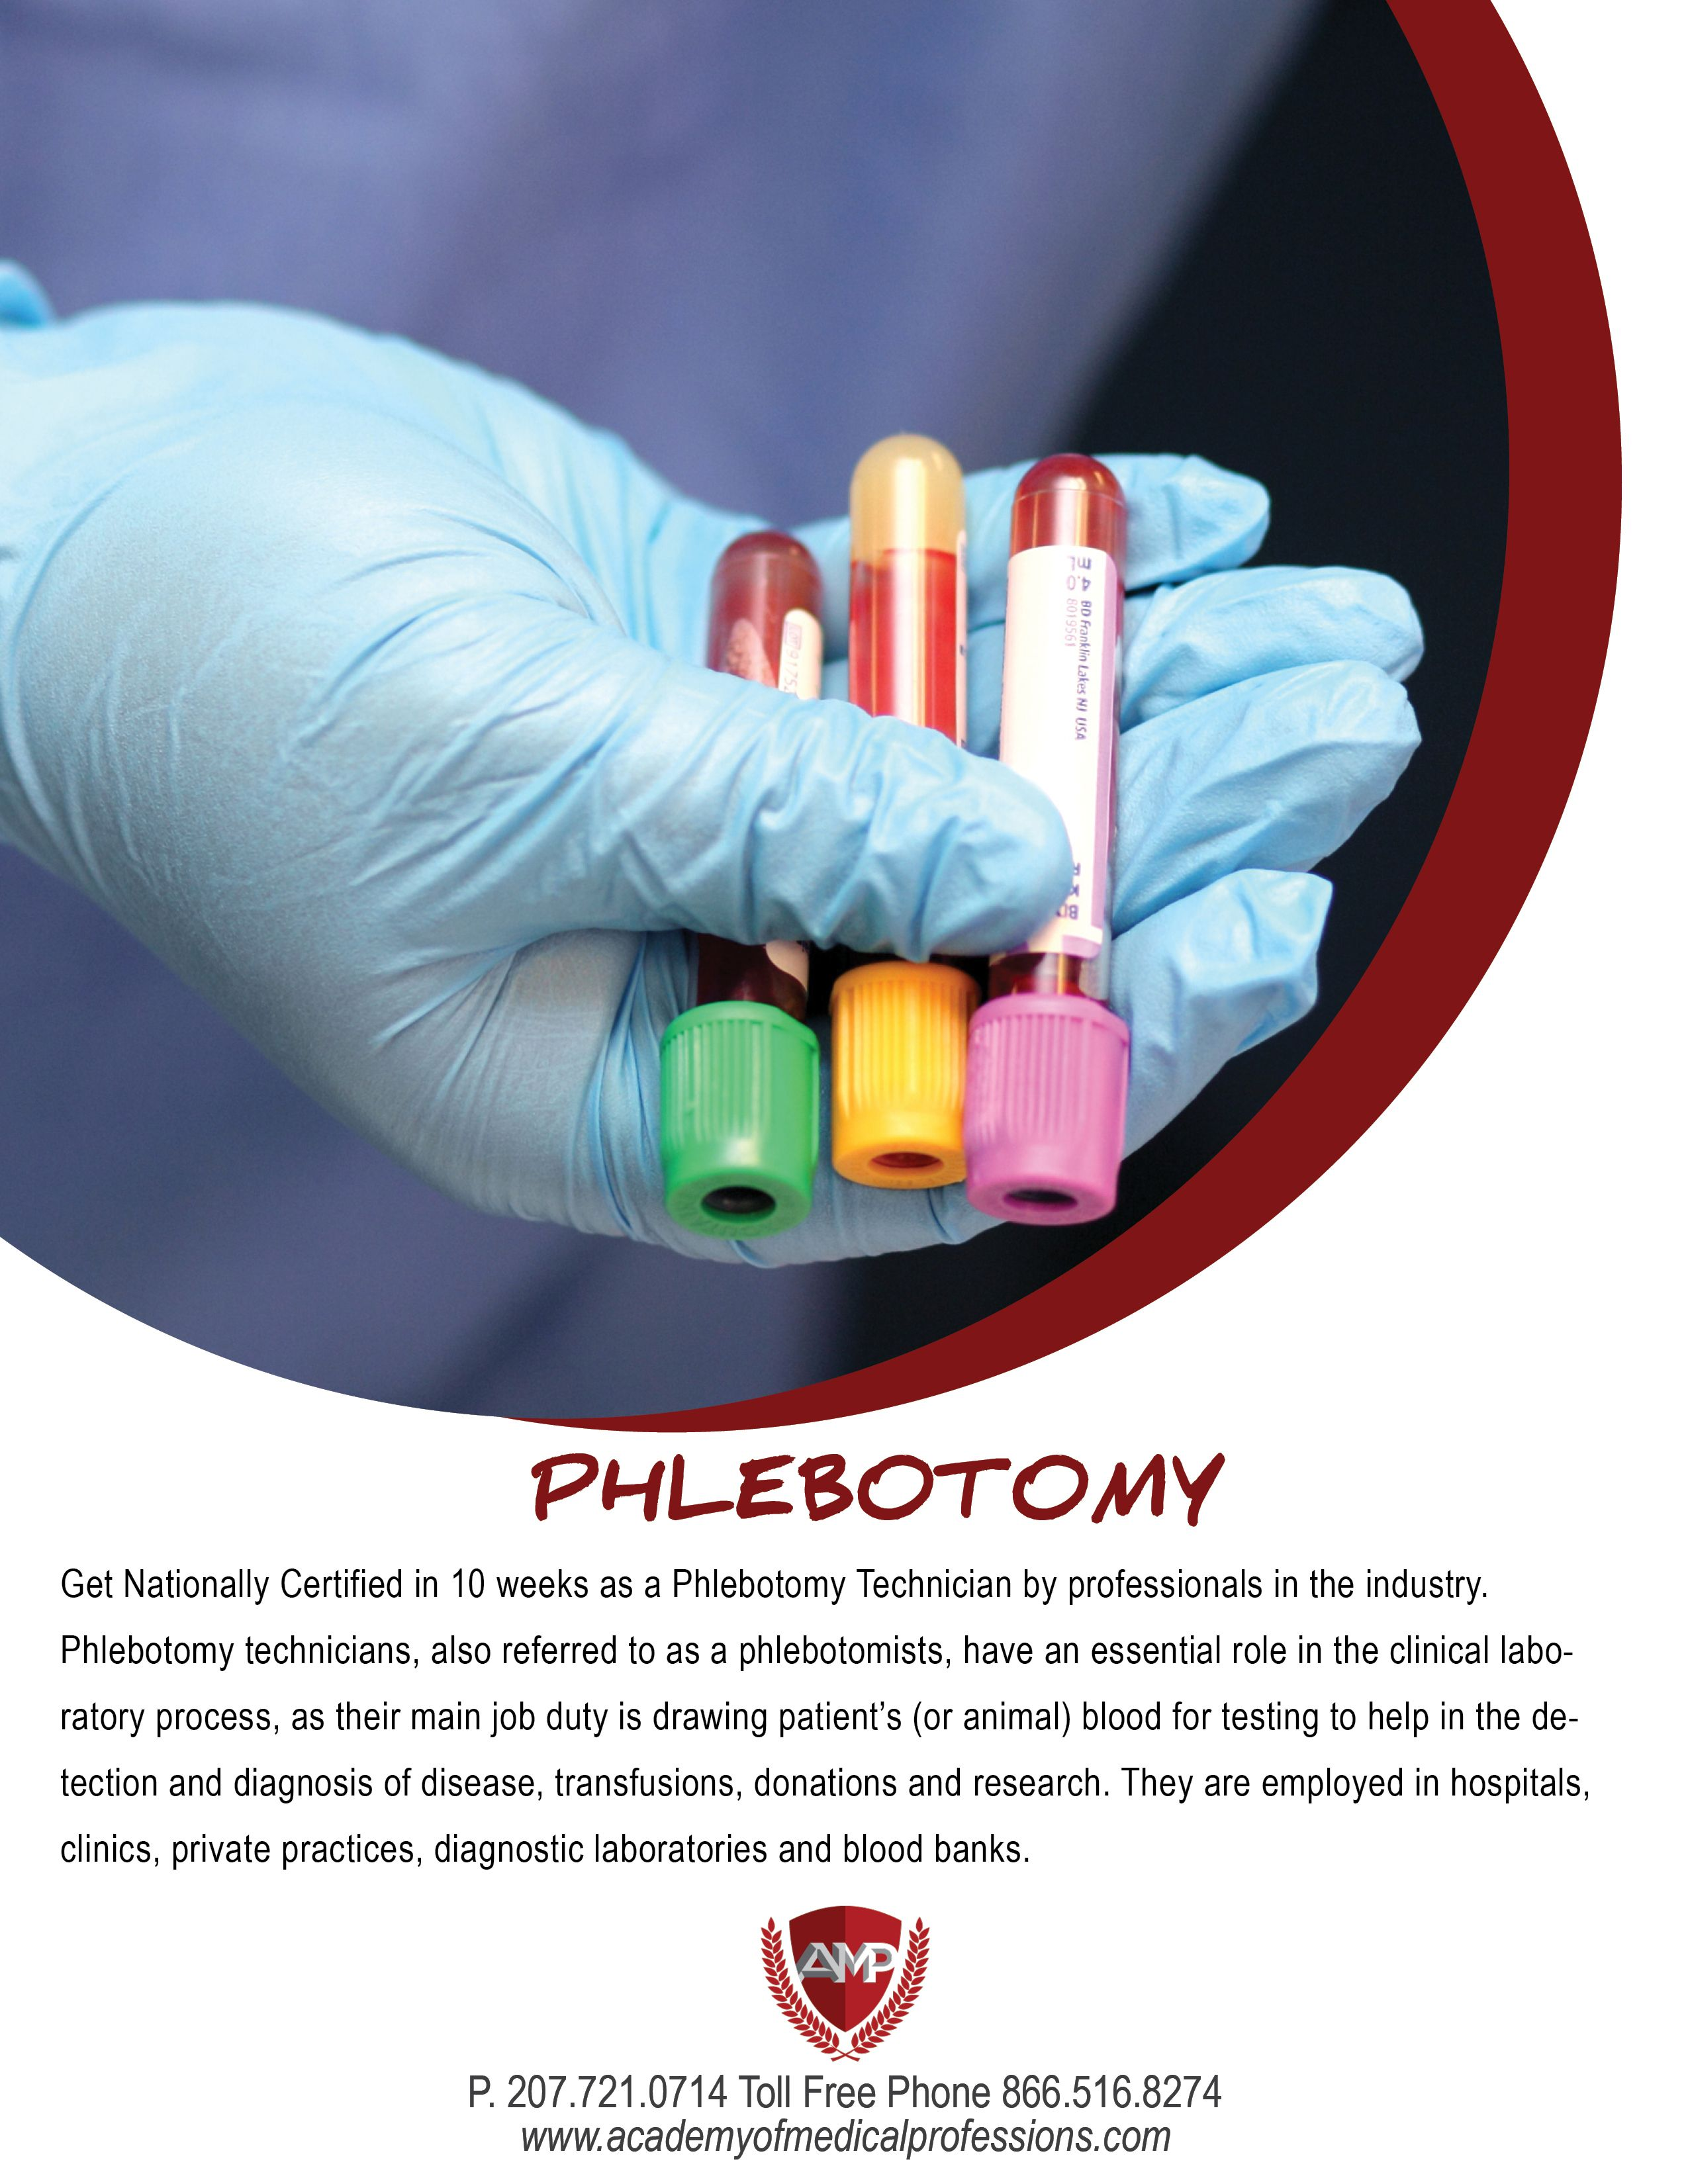 Become Nationally Certified In 10 Weeks As A Phlebotomy Technician